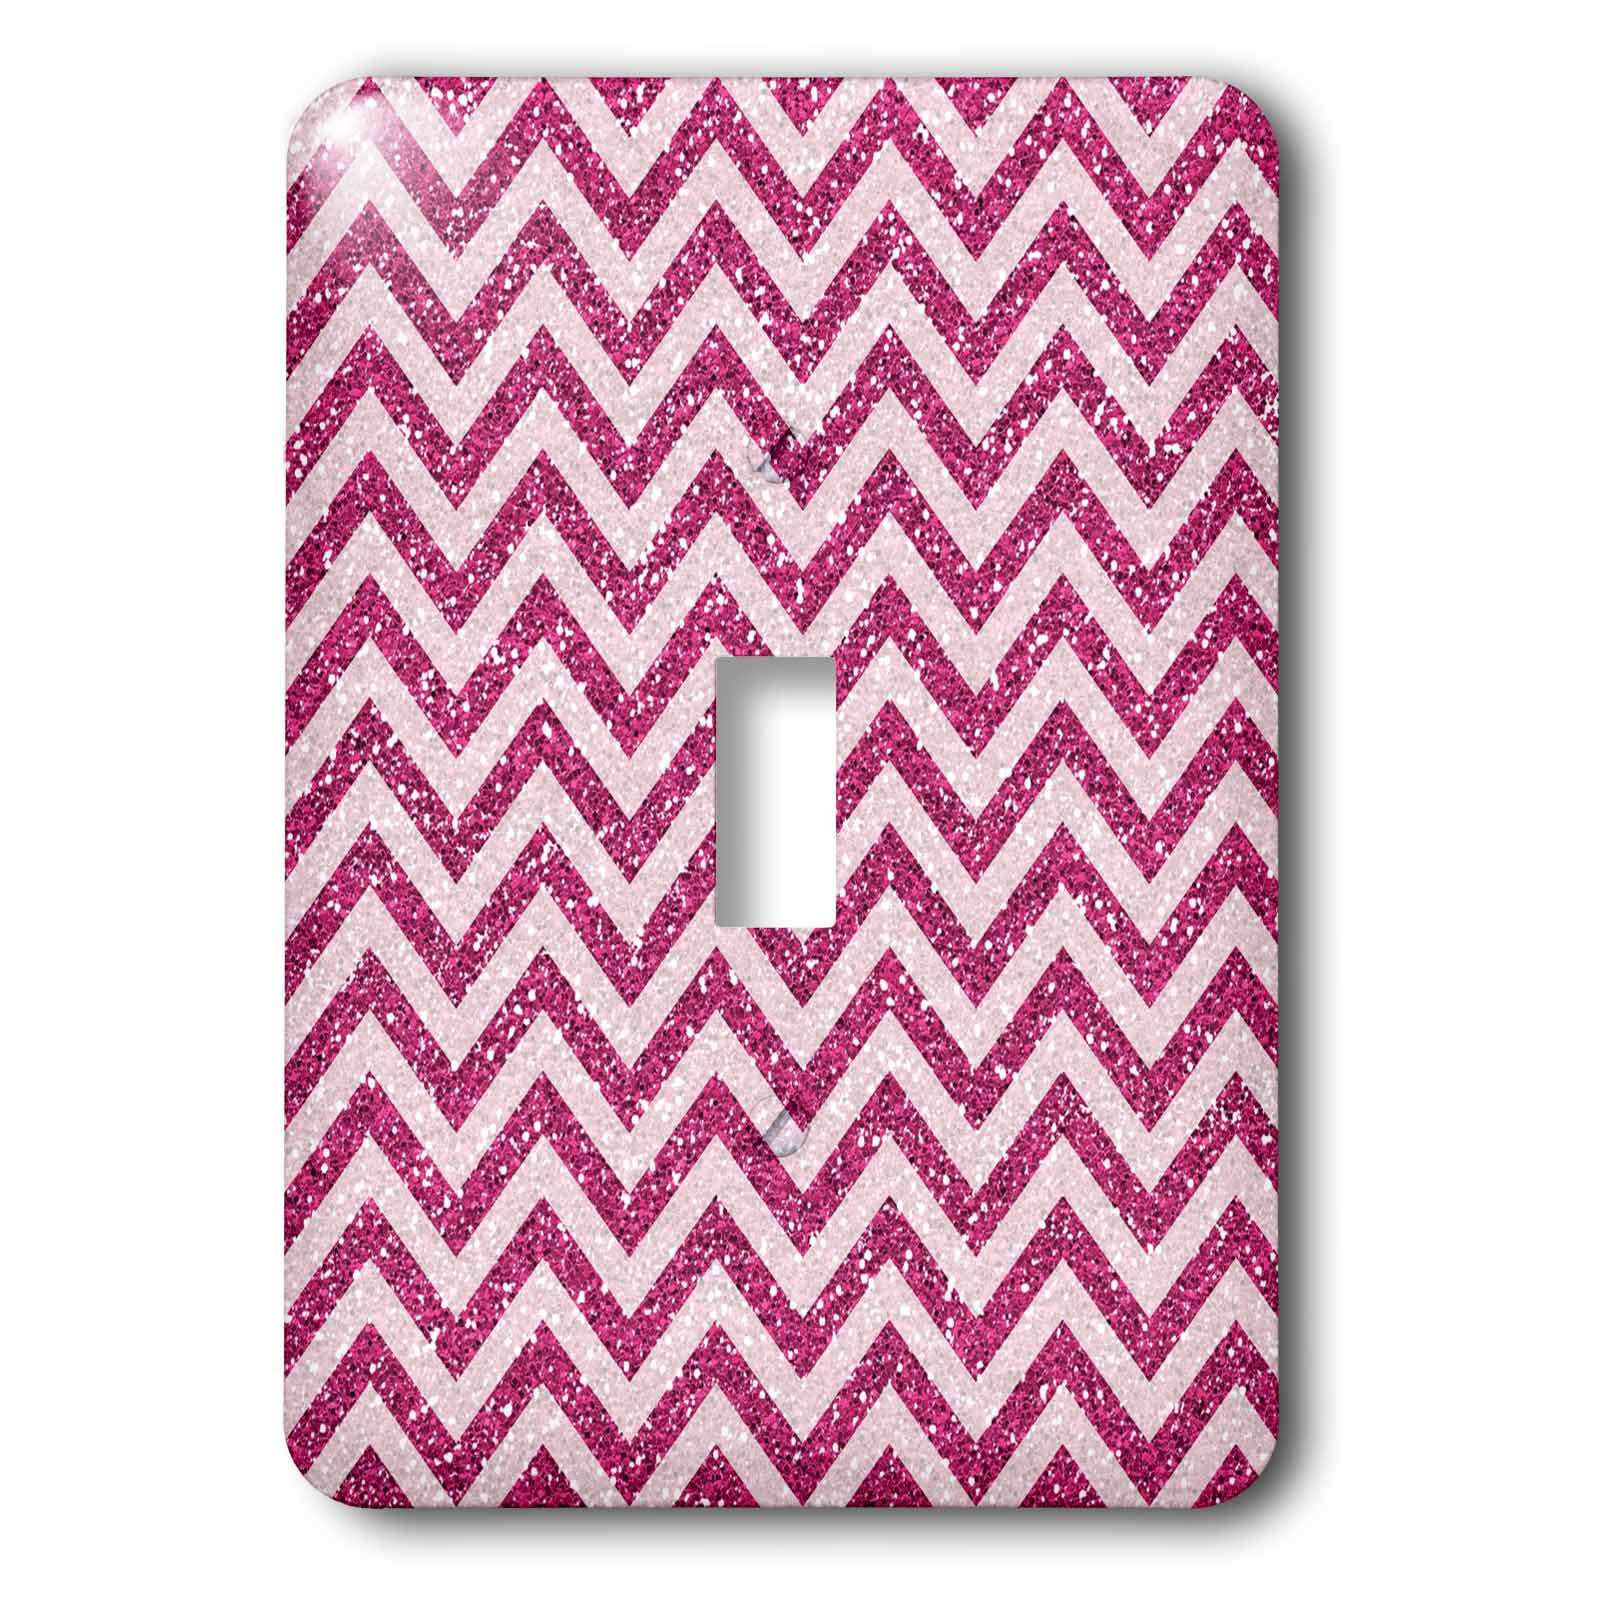 3dRose Bright Pink Glitter Effect Chevron Stripes, 2 Plug Outlet Cover